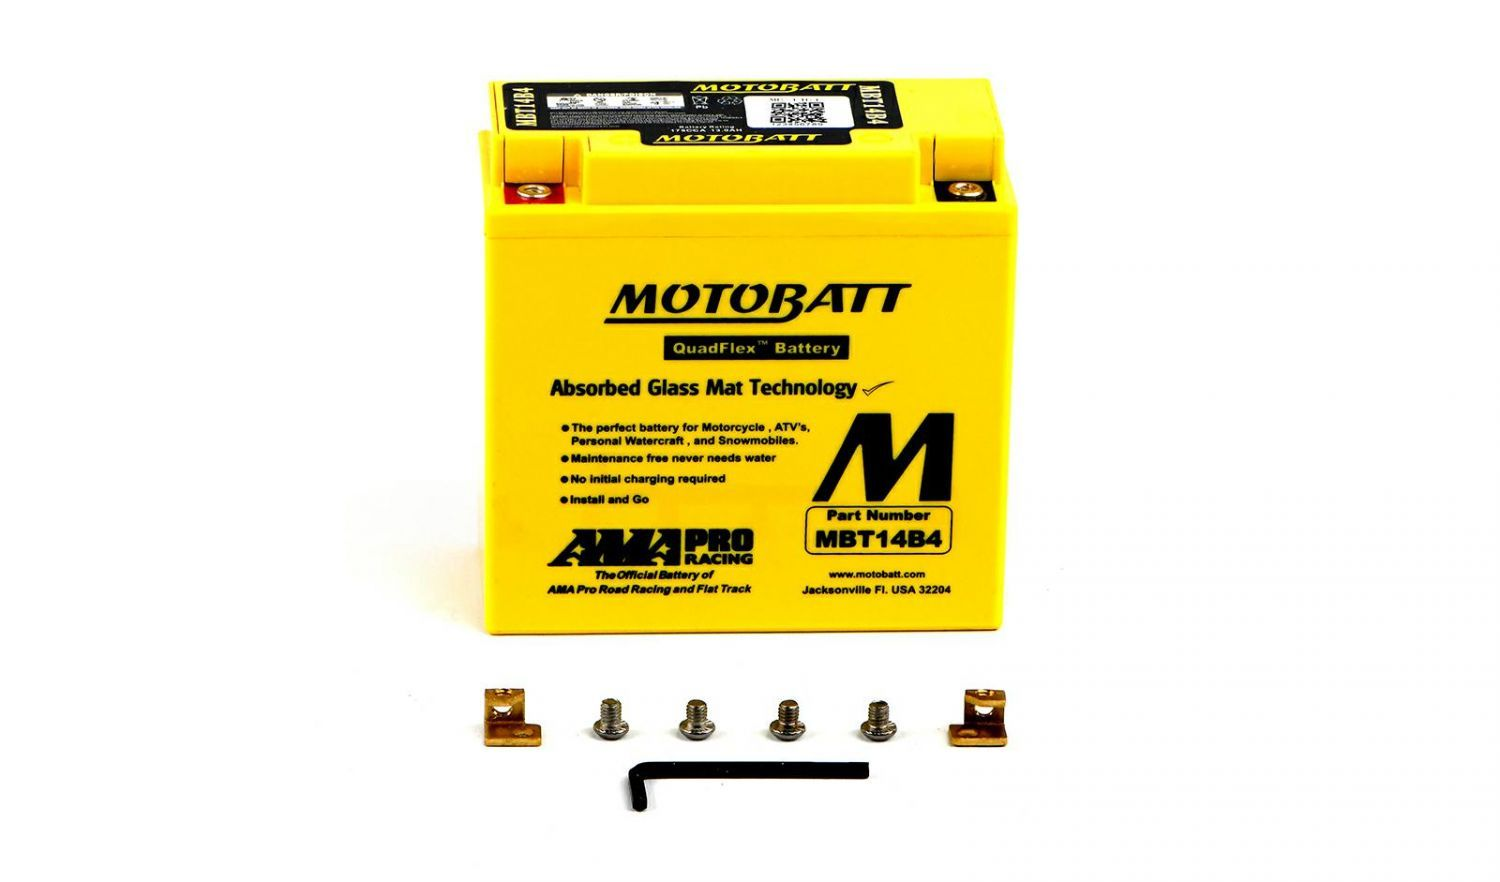 Motobatt Batteries - 501146MY image